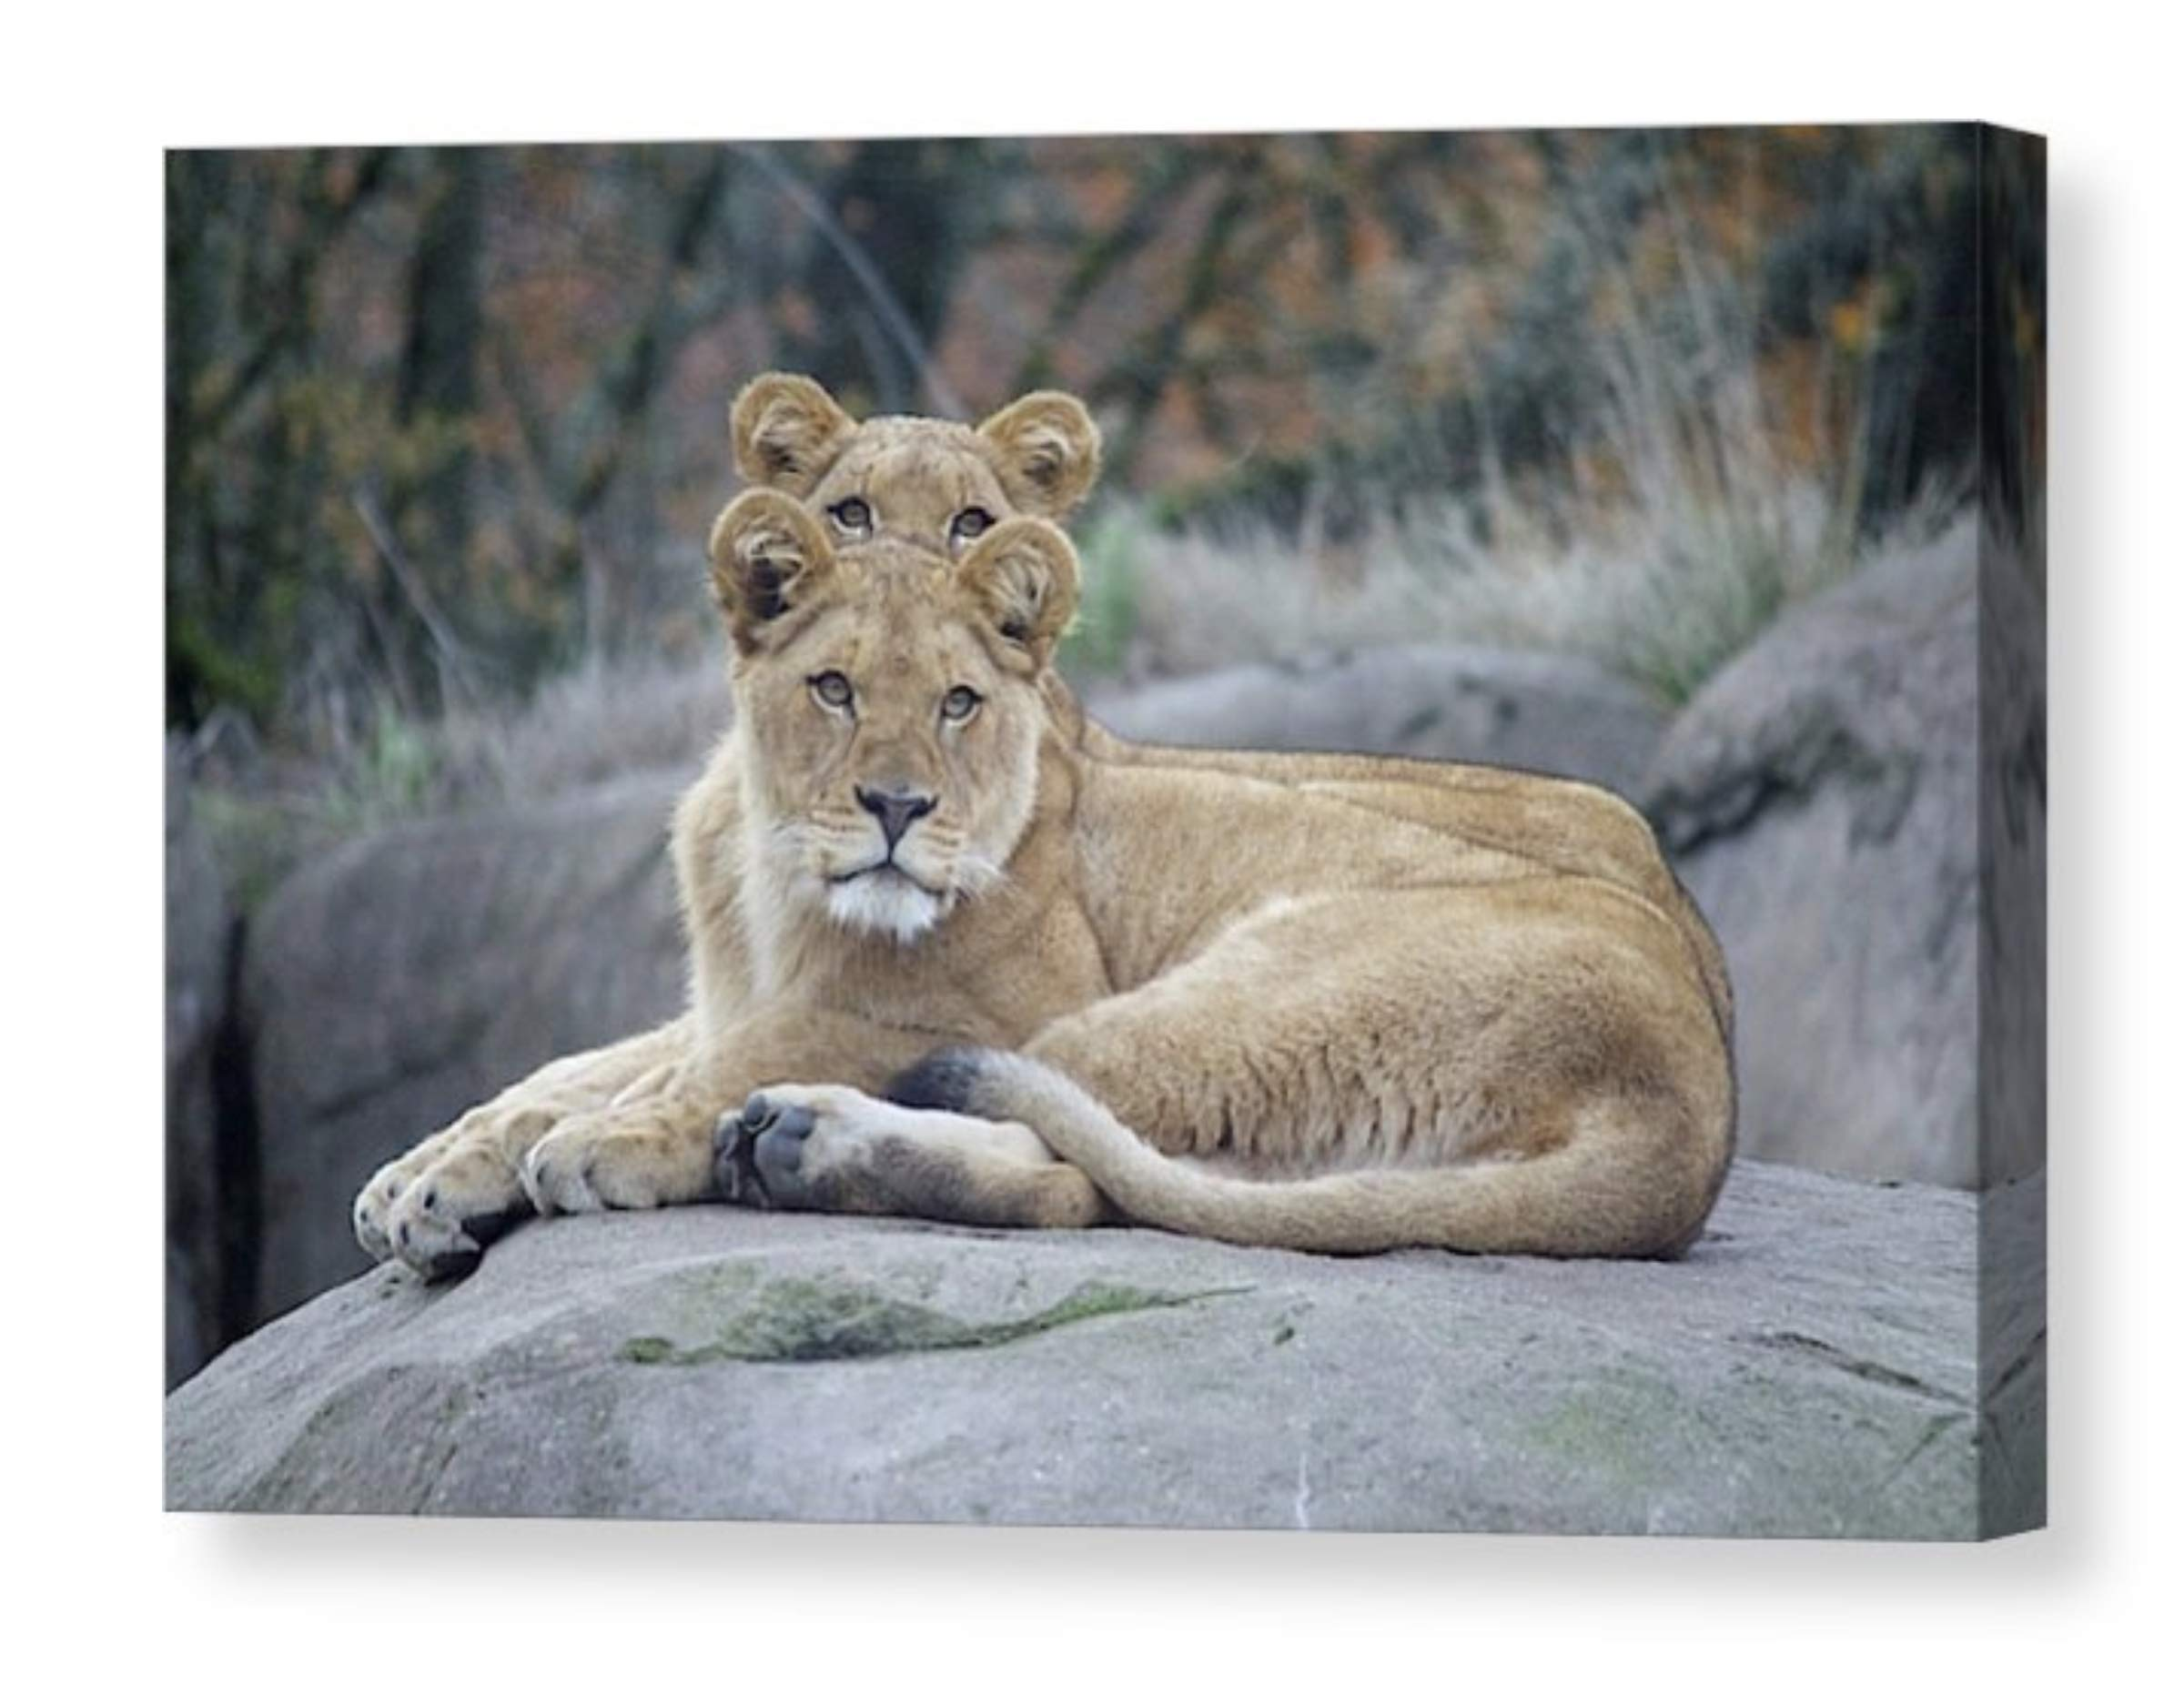 Baby Animal Photo on CANVAS Two Adorable Lion Cubs Lounging on a Rock Children's Room Nursery Wall Art Twins Gift Ready to Hang 8x10 8x12 11x14 12x18 16x20 16x24 20x30